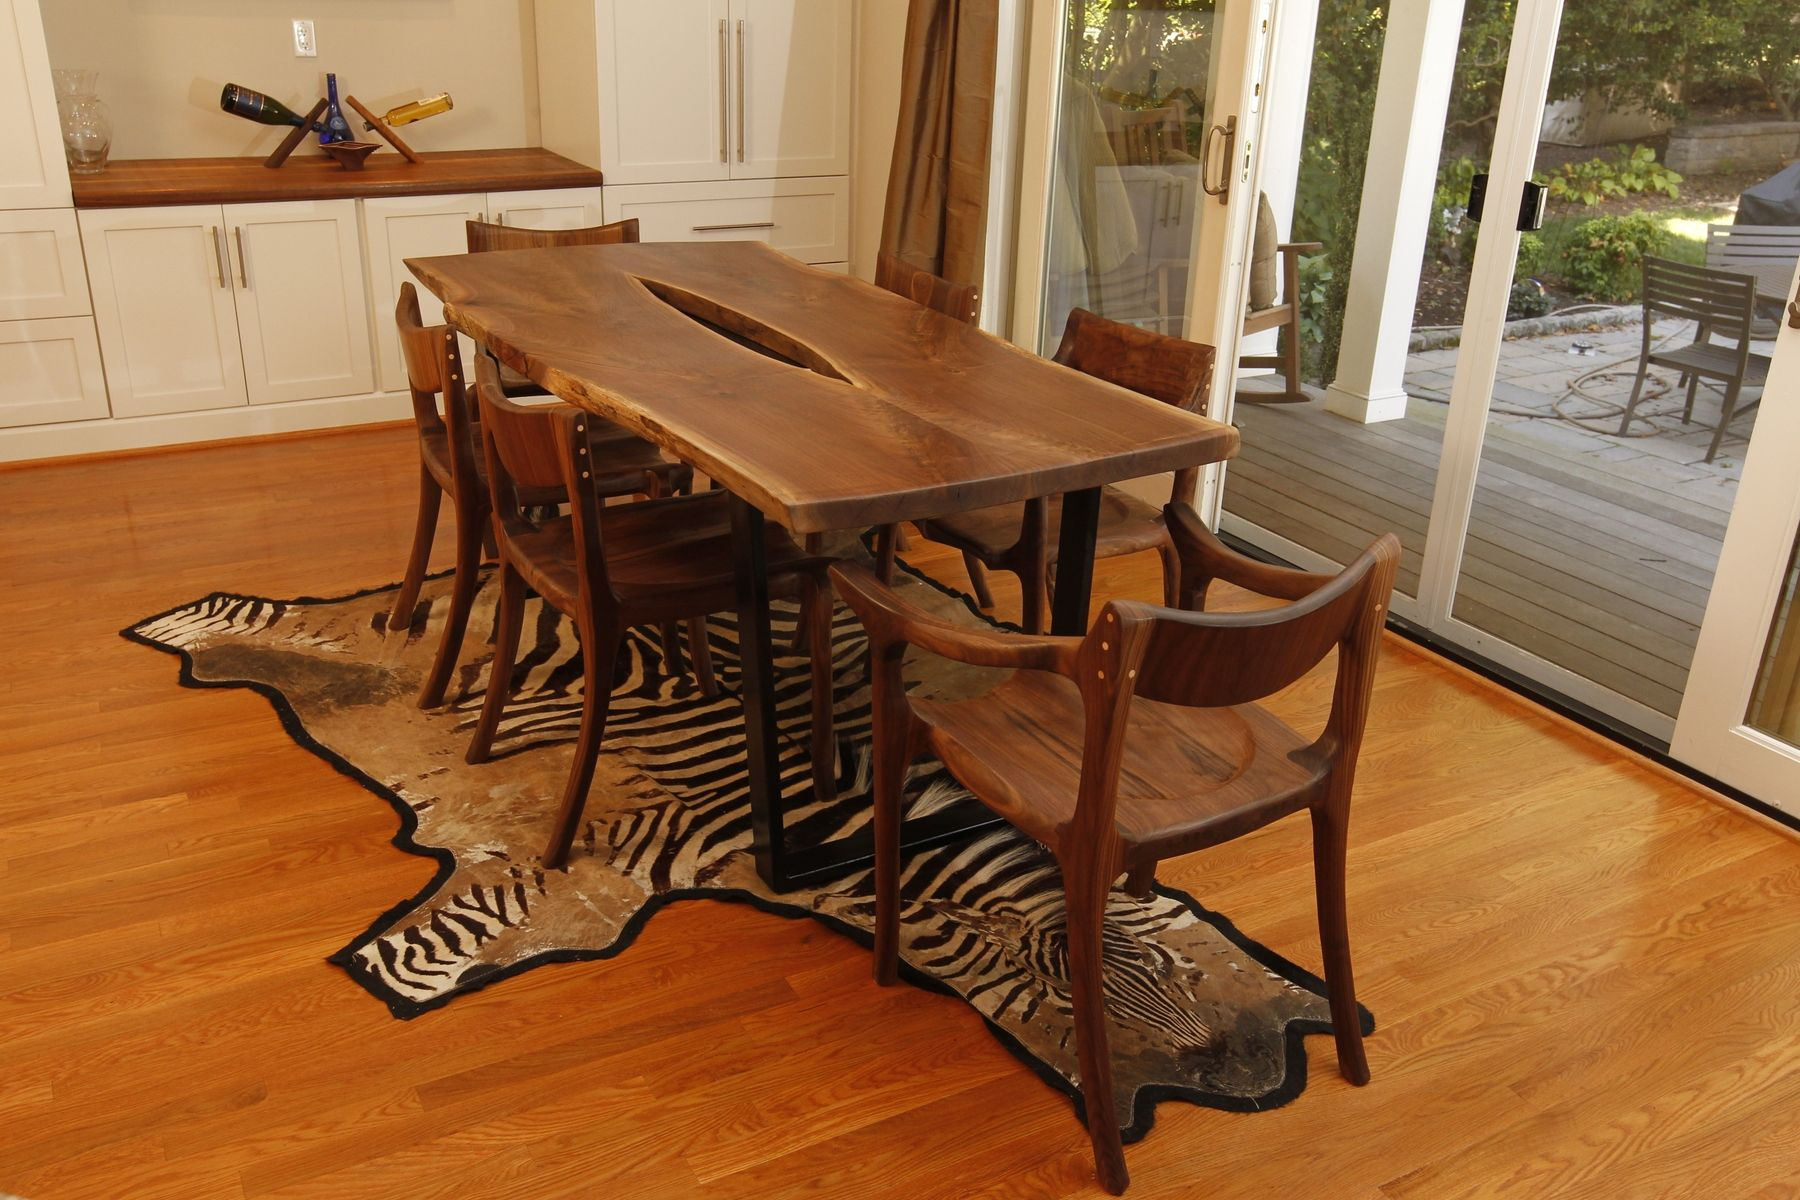 Walnut live edge dining table - Custom Made Live Edge Walnut Carbon Fiber Dining Table